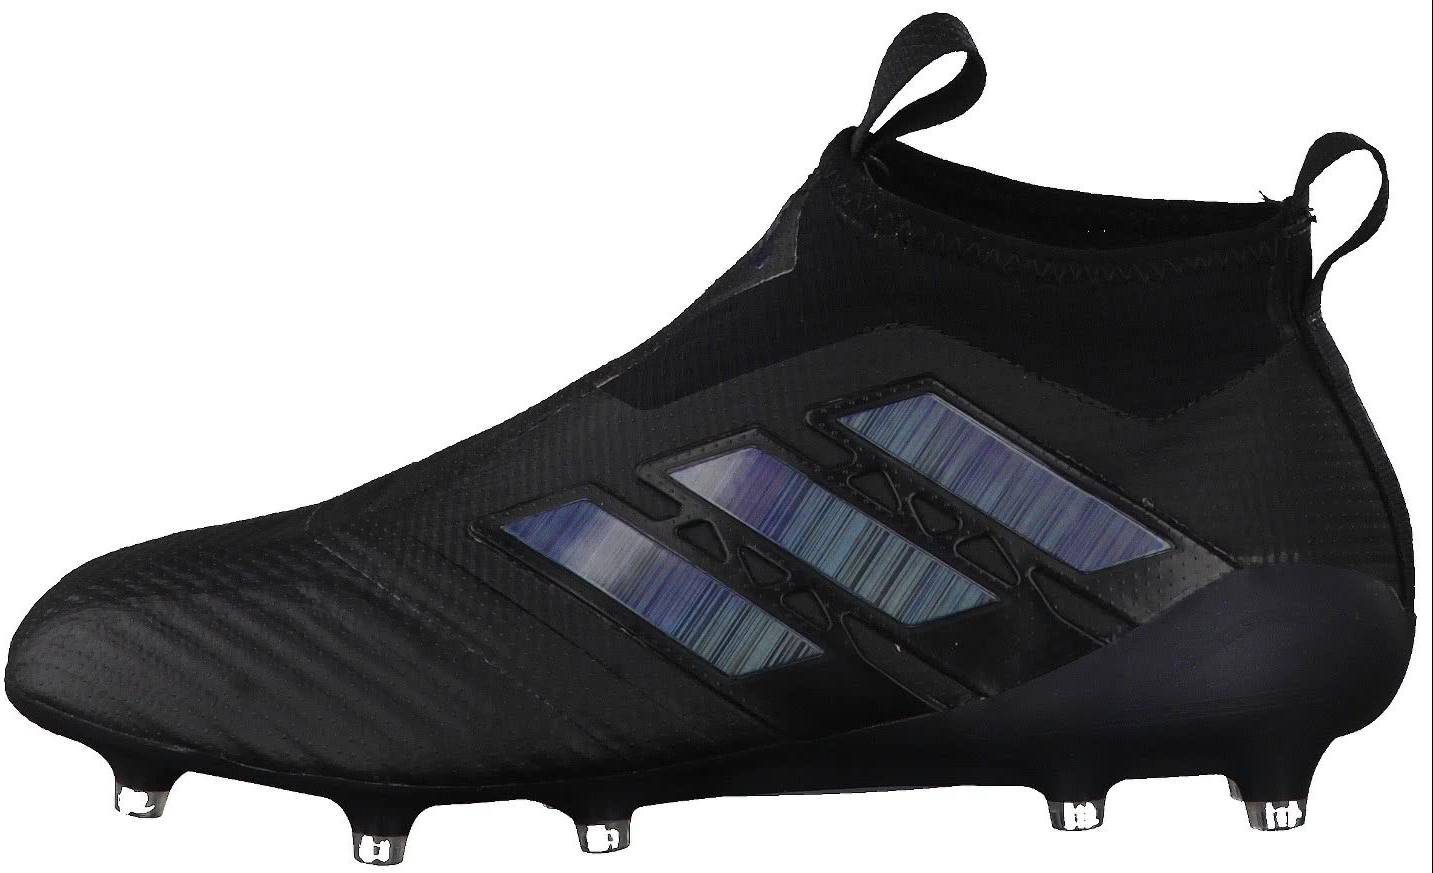 Adidas Ace 17 Purecontrol Firm Ground - Deals ($230), Facts ...